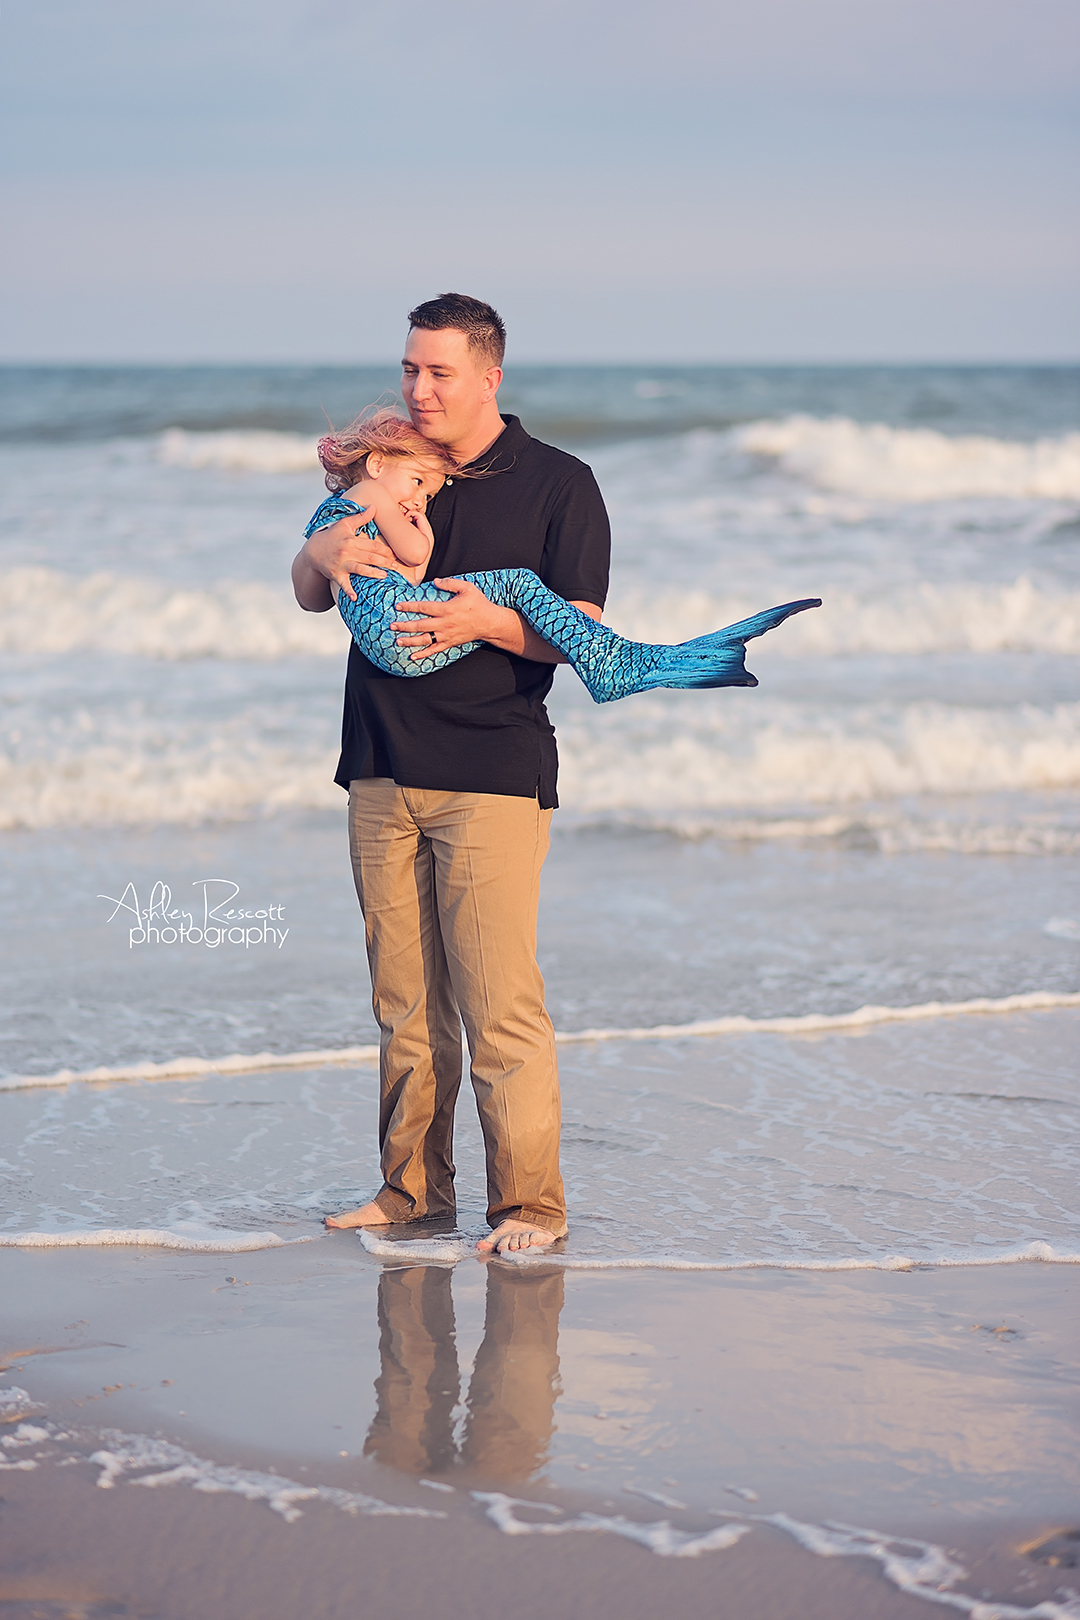 Dad and mermaid daughter in water at beach